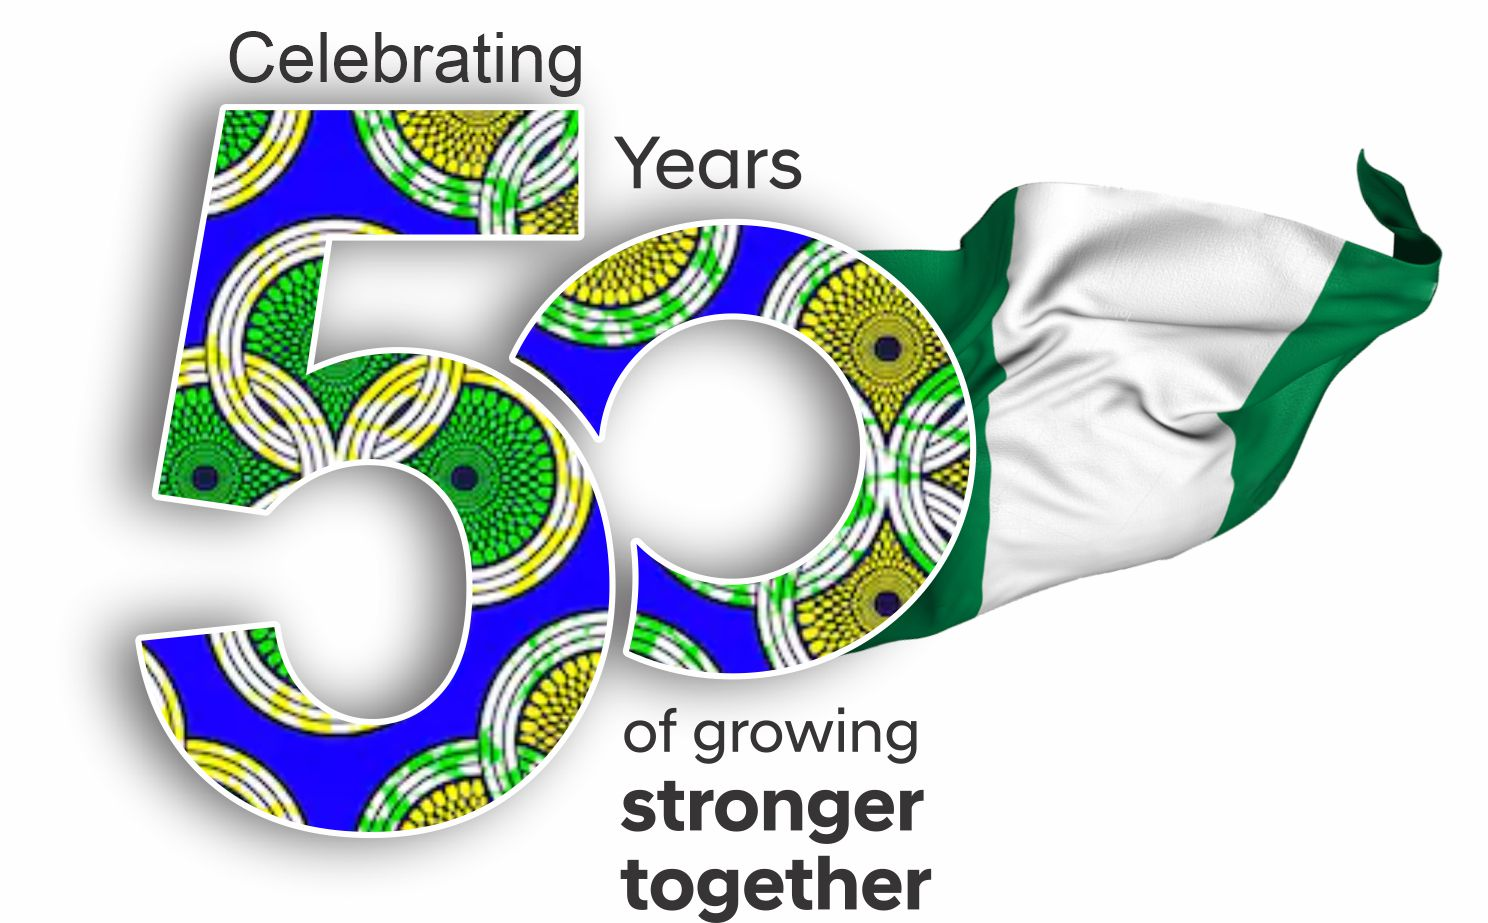 50years of Growing Stronger together 2